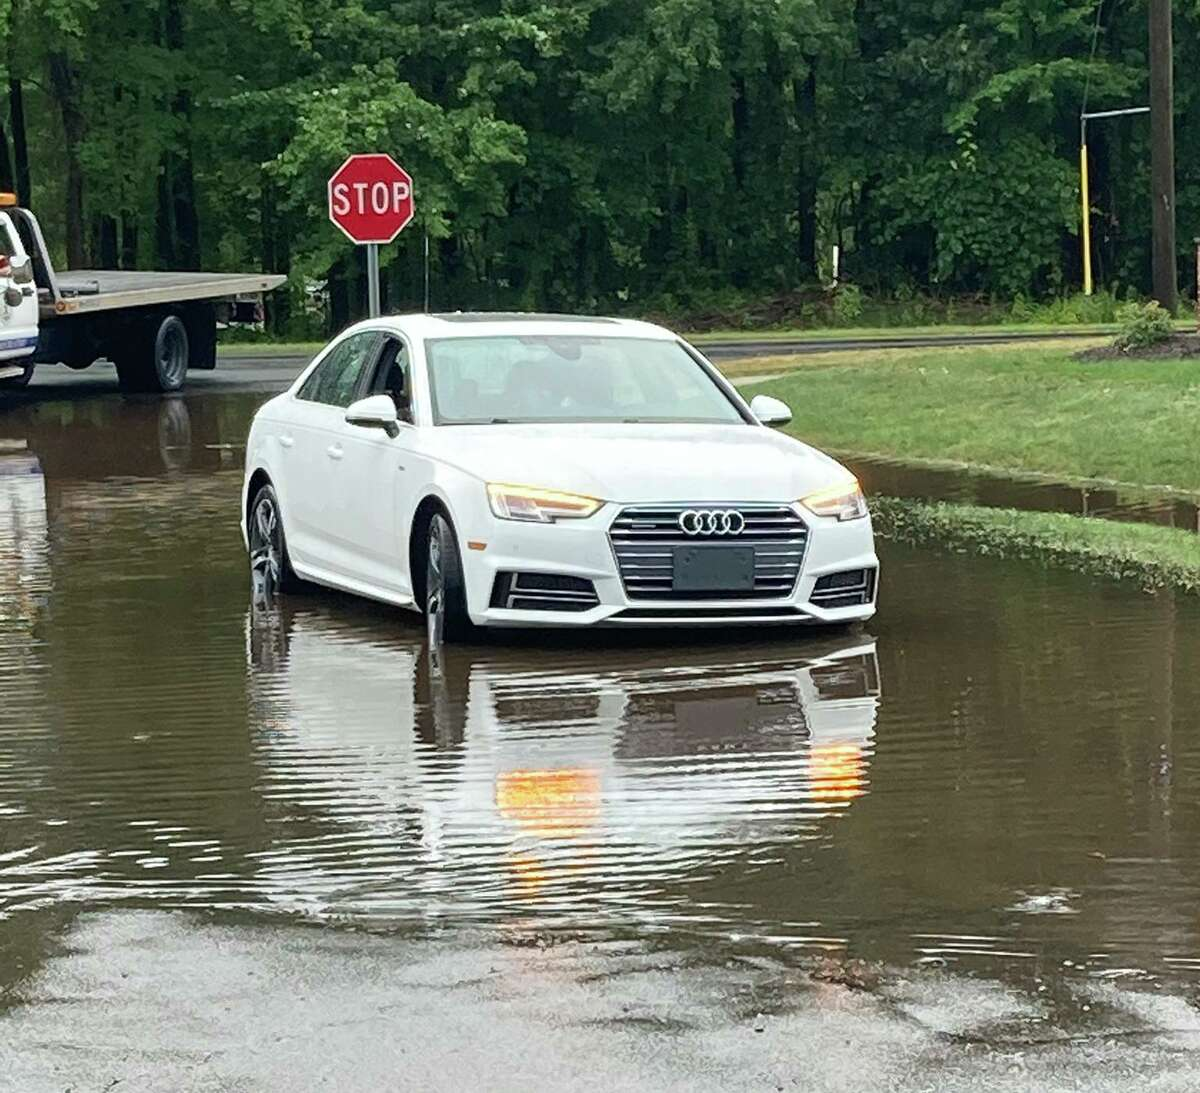 An Audi was stuck in a water and stalled in South Windsor, Conn., on Thursday, Aug. 19, 2021. He said an officer was able to pull up next to the woman's car and have her climb into the backseat of the cruiser before the water levels got too high.